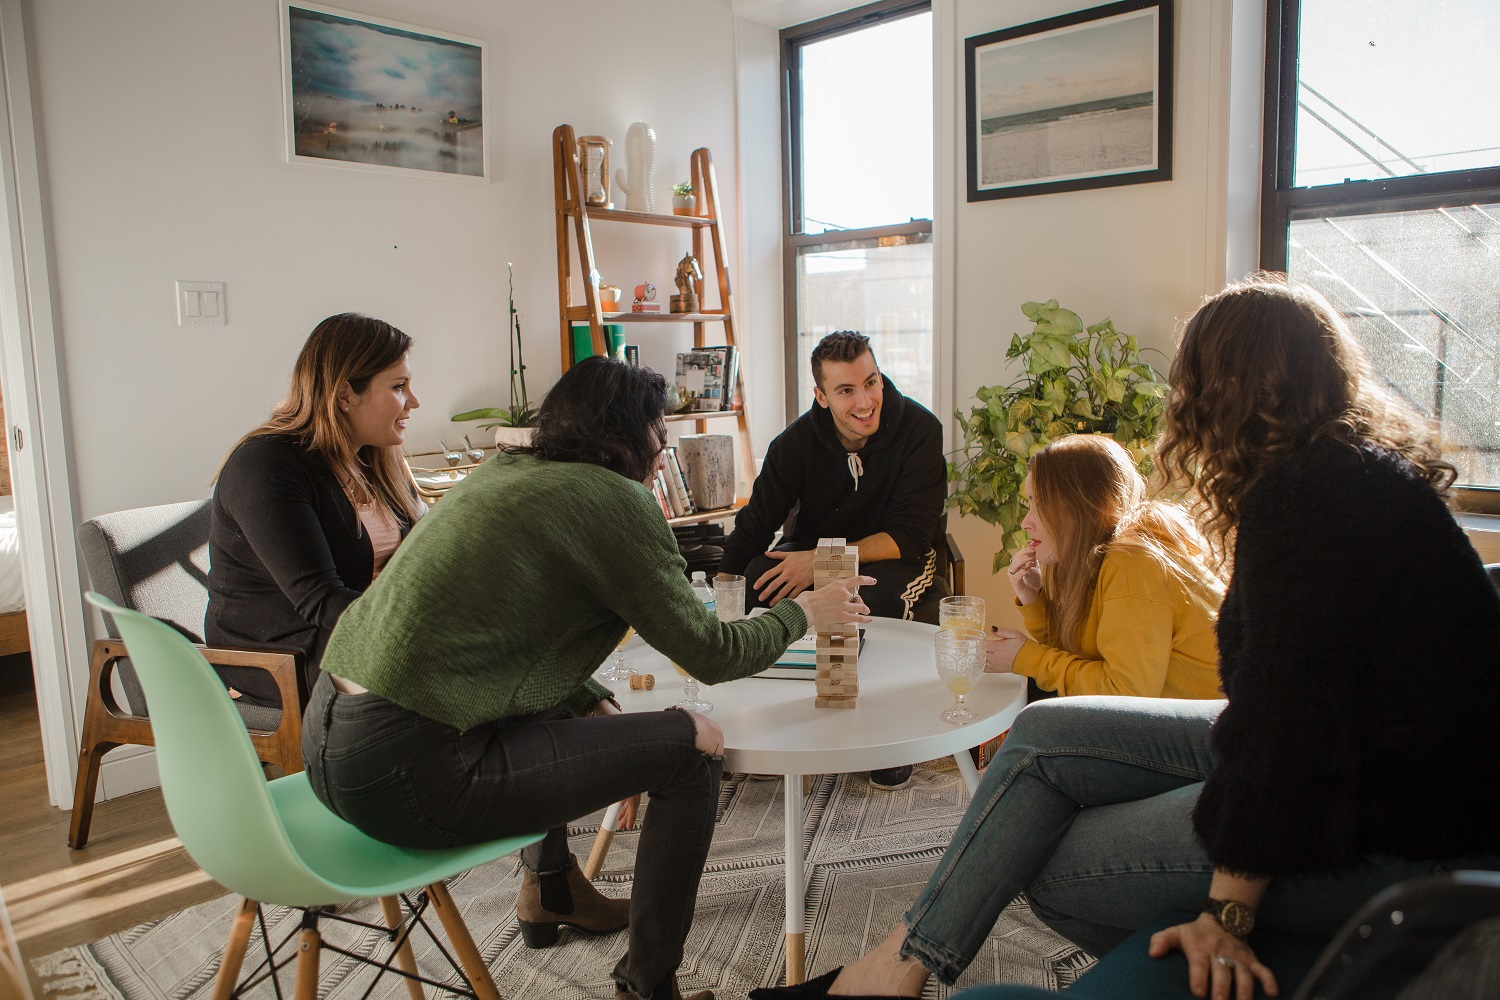 4 Things You Know About Coliving